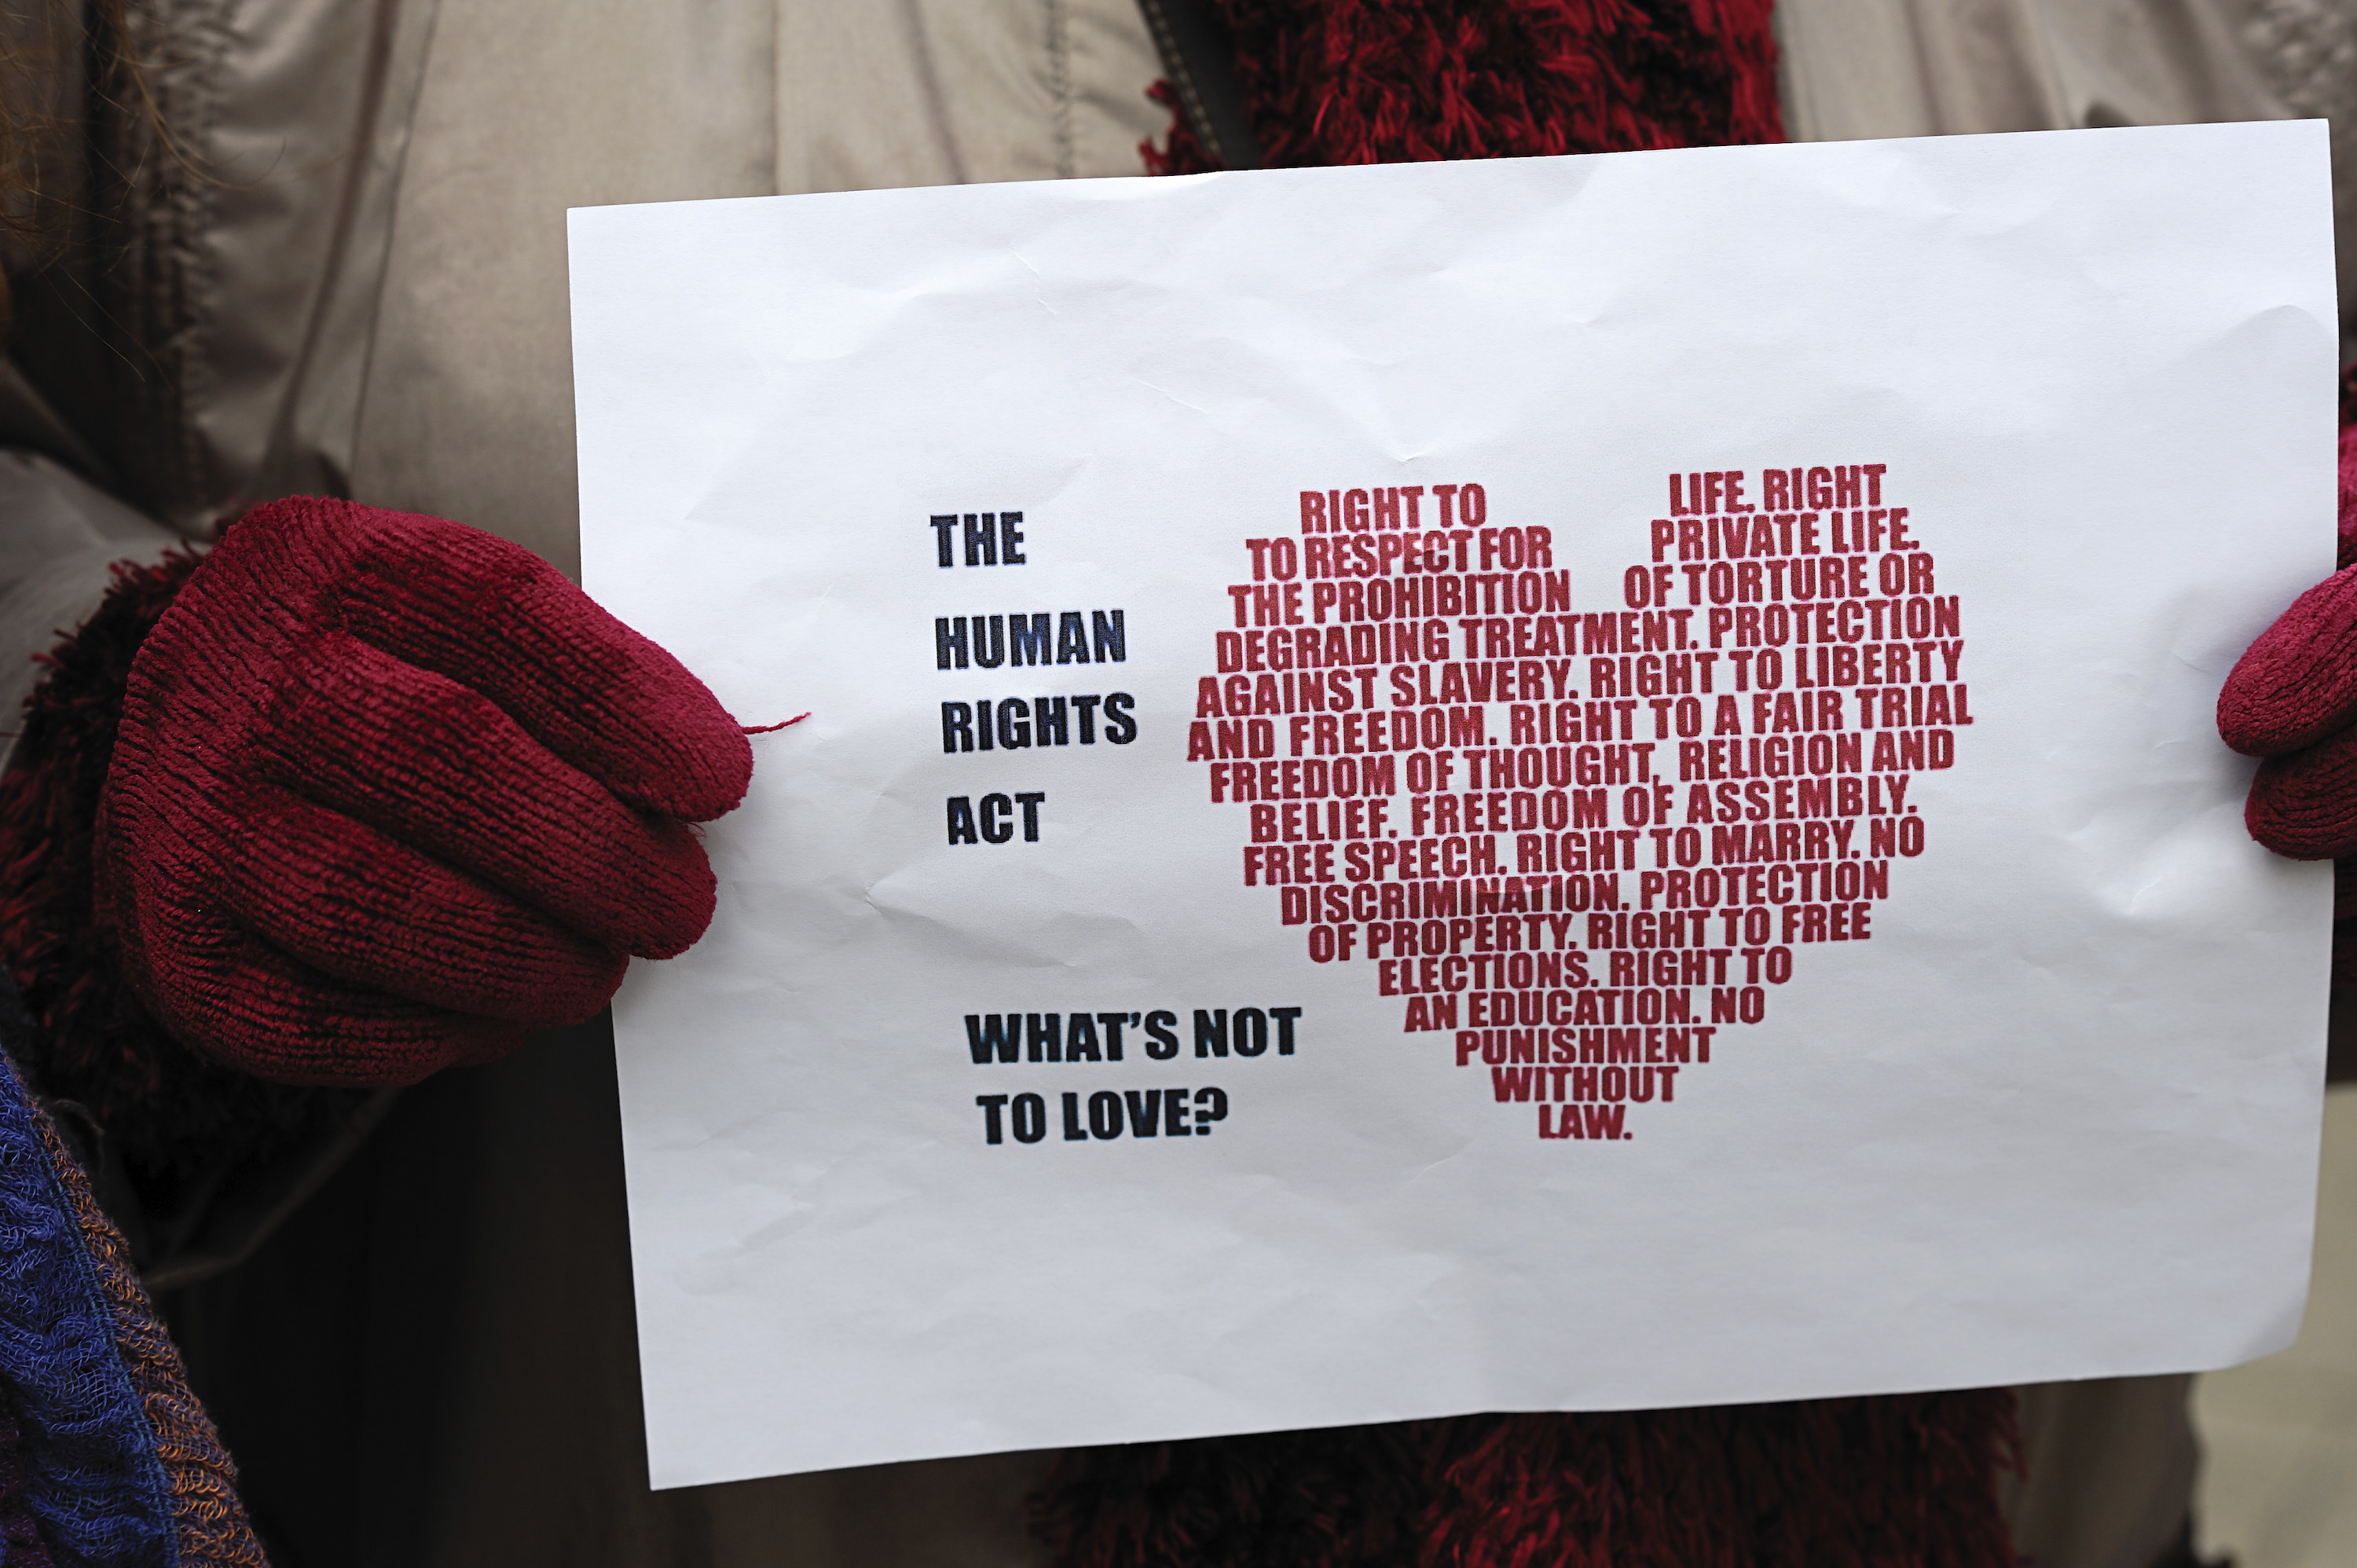 Sign shows a heart with text referencing the Human Rights Act